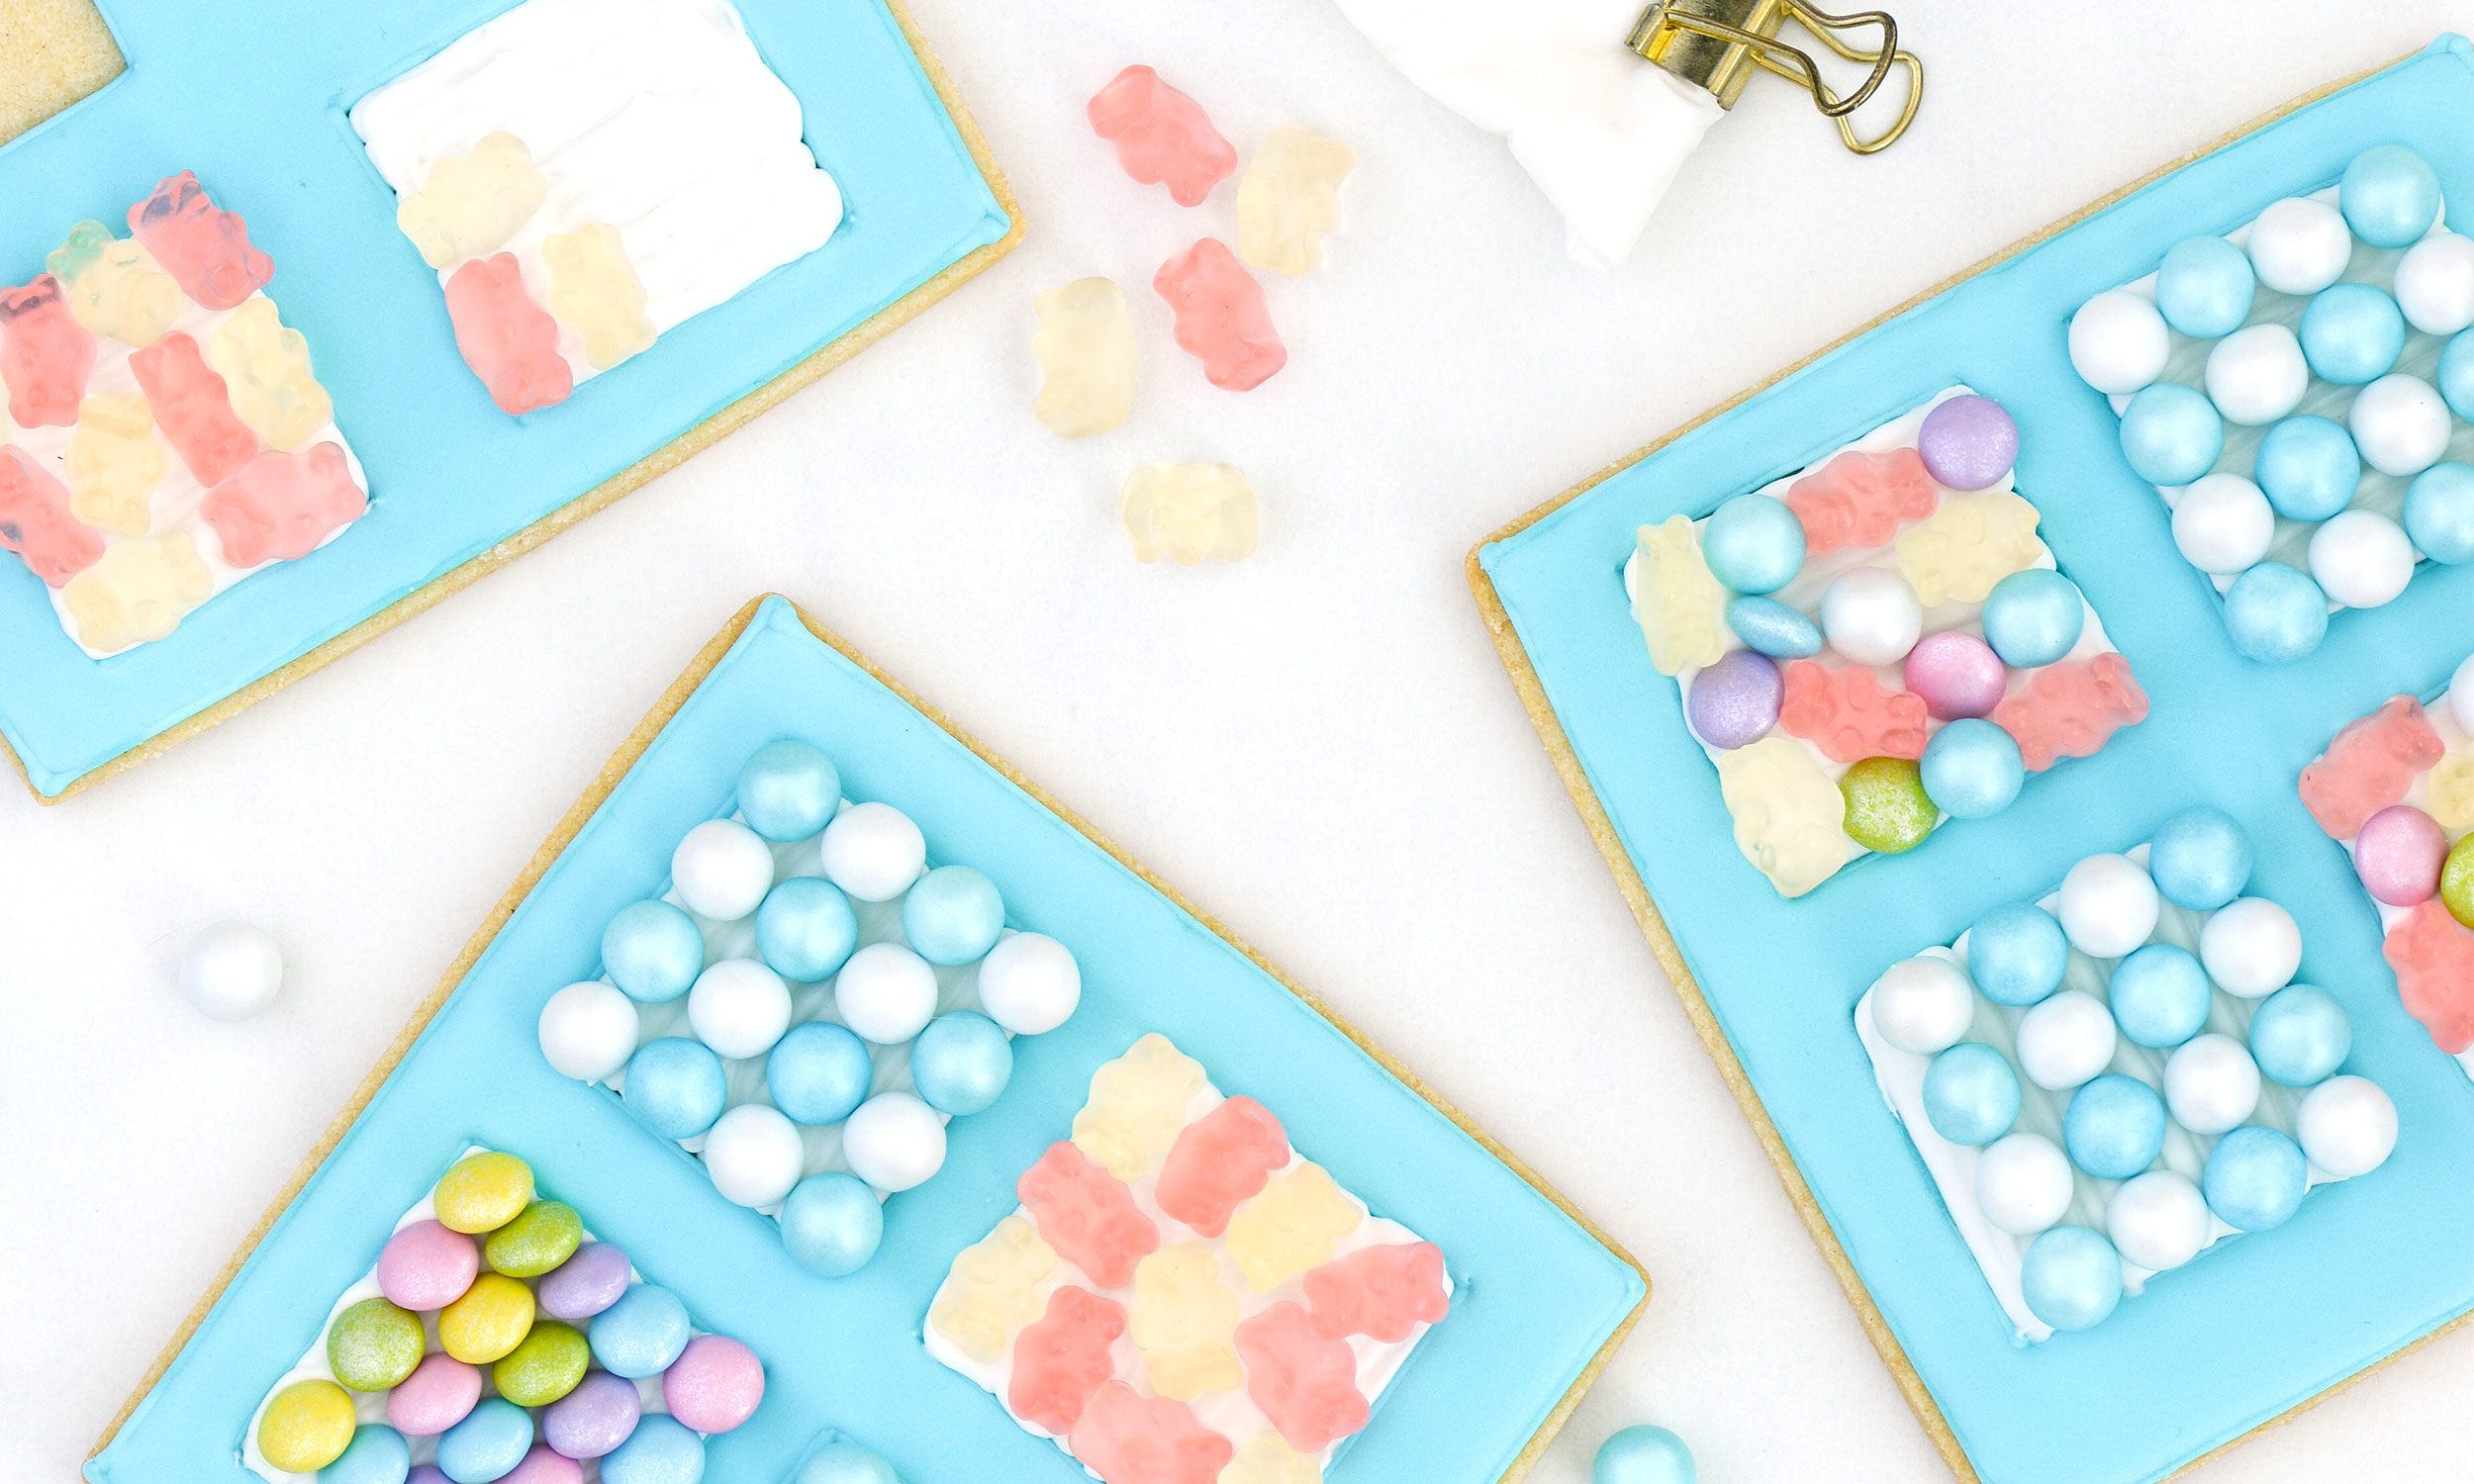 Sugarfina Vancouver Opening